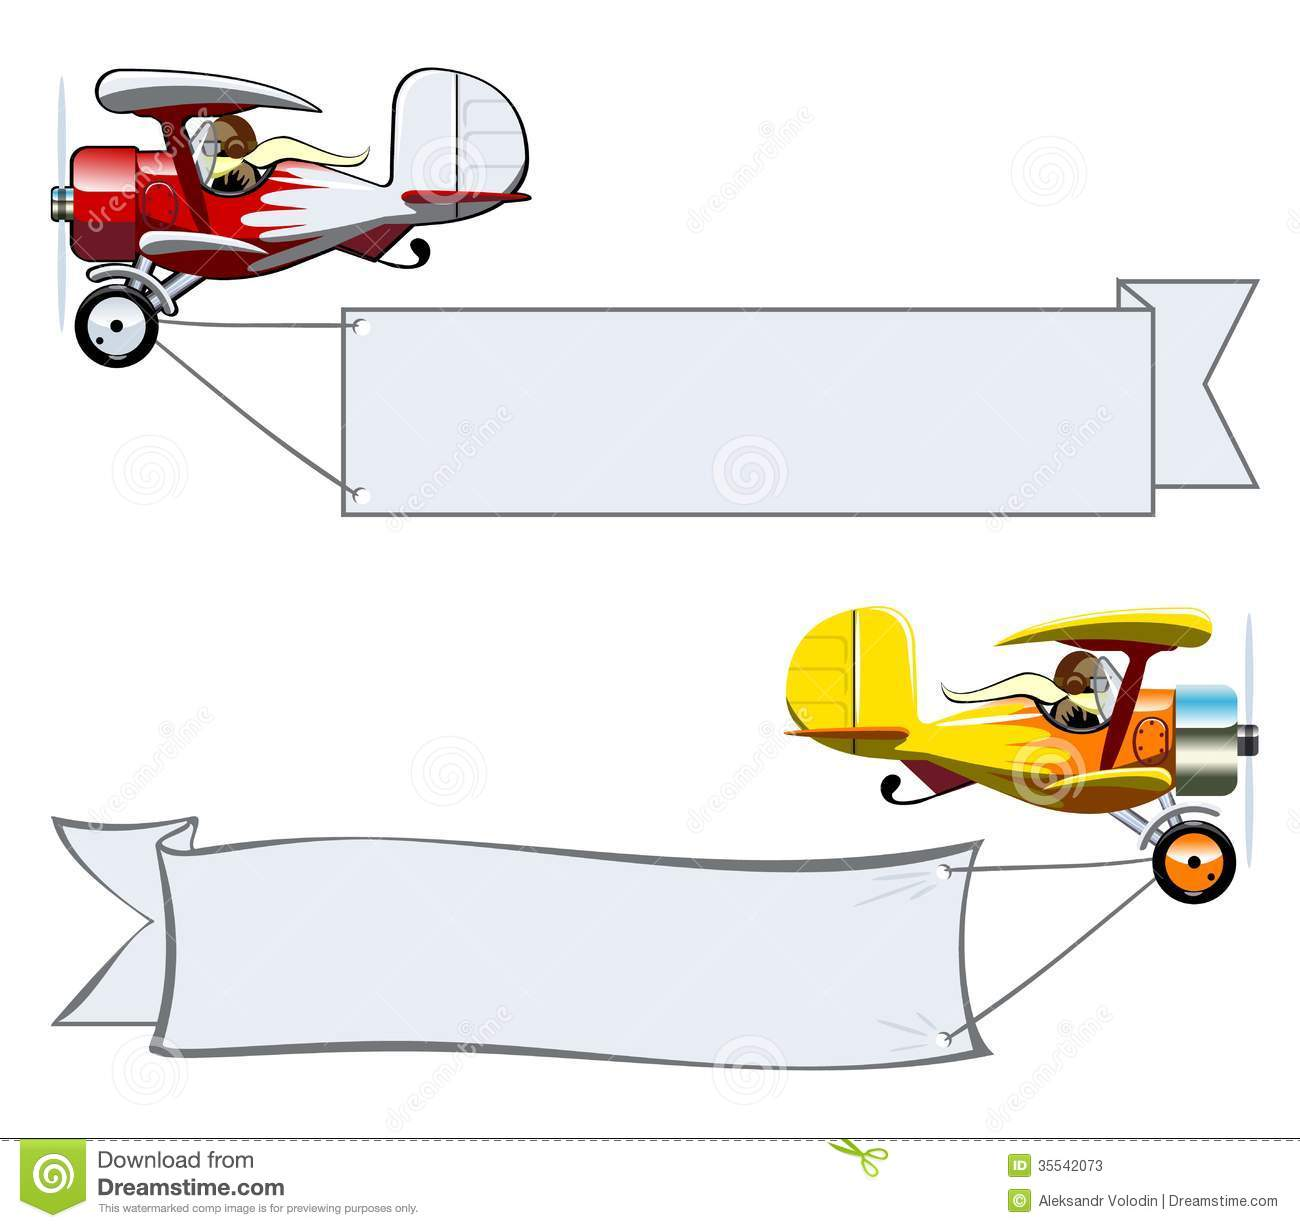 7C 7C  win7wallpapers   7Cwalls 7Caeroplane take off HD likewise Cartoon notebook besides Royalty Free Stock Images Aeroplane Birthday Flying Message Banner Vector Illustration Image34409439 furthermore Minecraft Wallpapers For Background Hd Wallpaper together with Jet Fighter Plane Cartoon. on old cartoon plane with banner